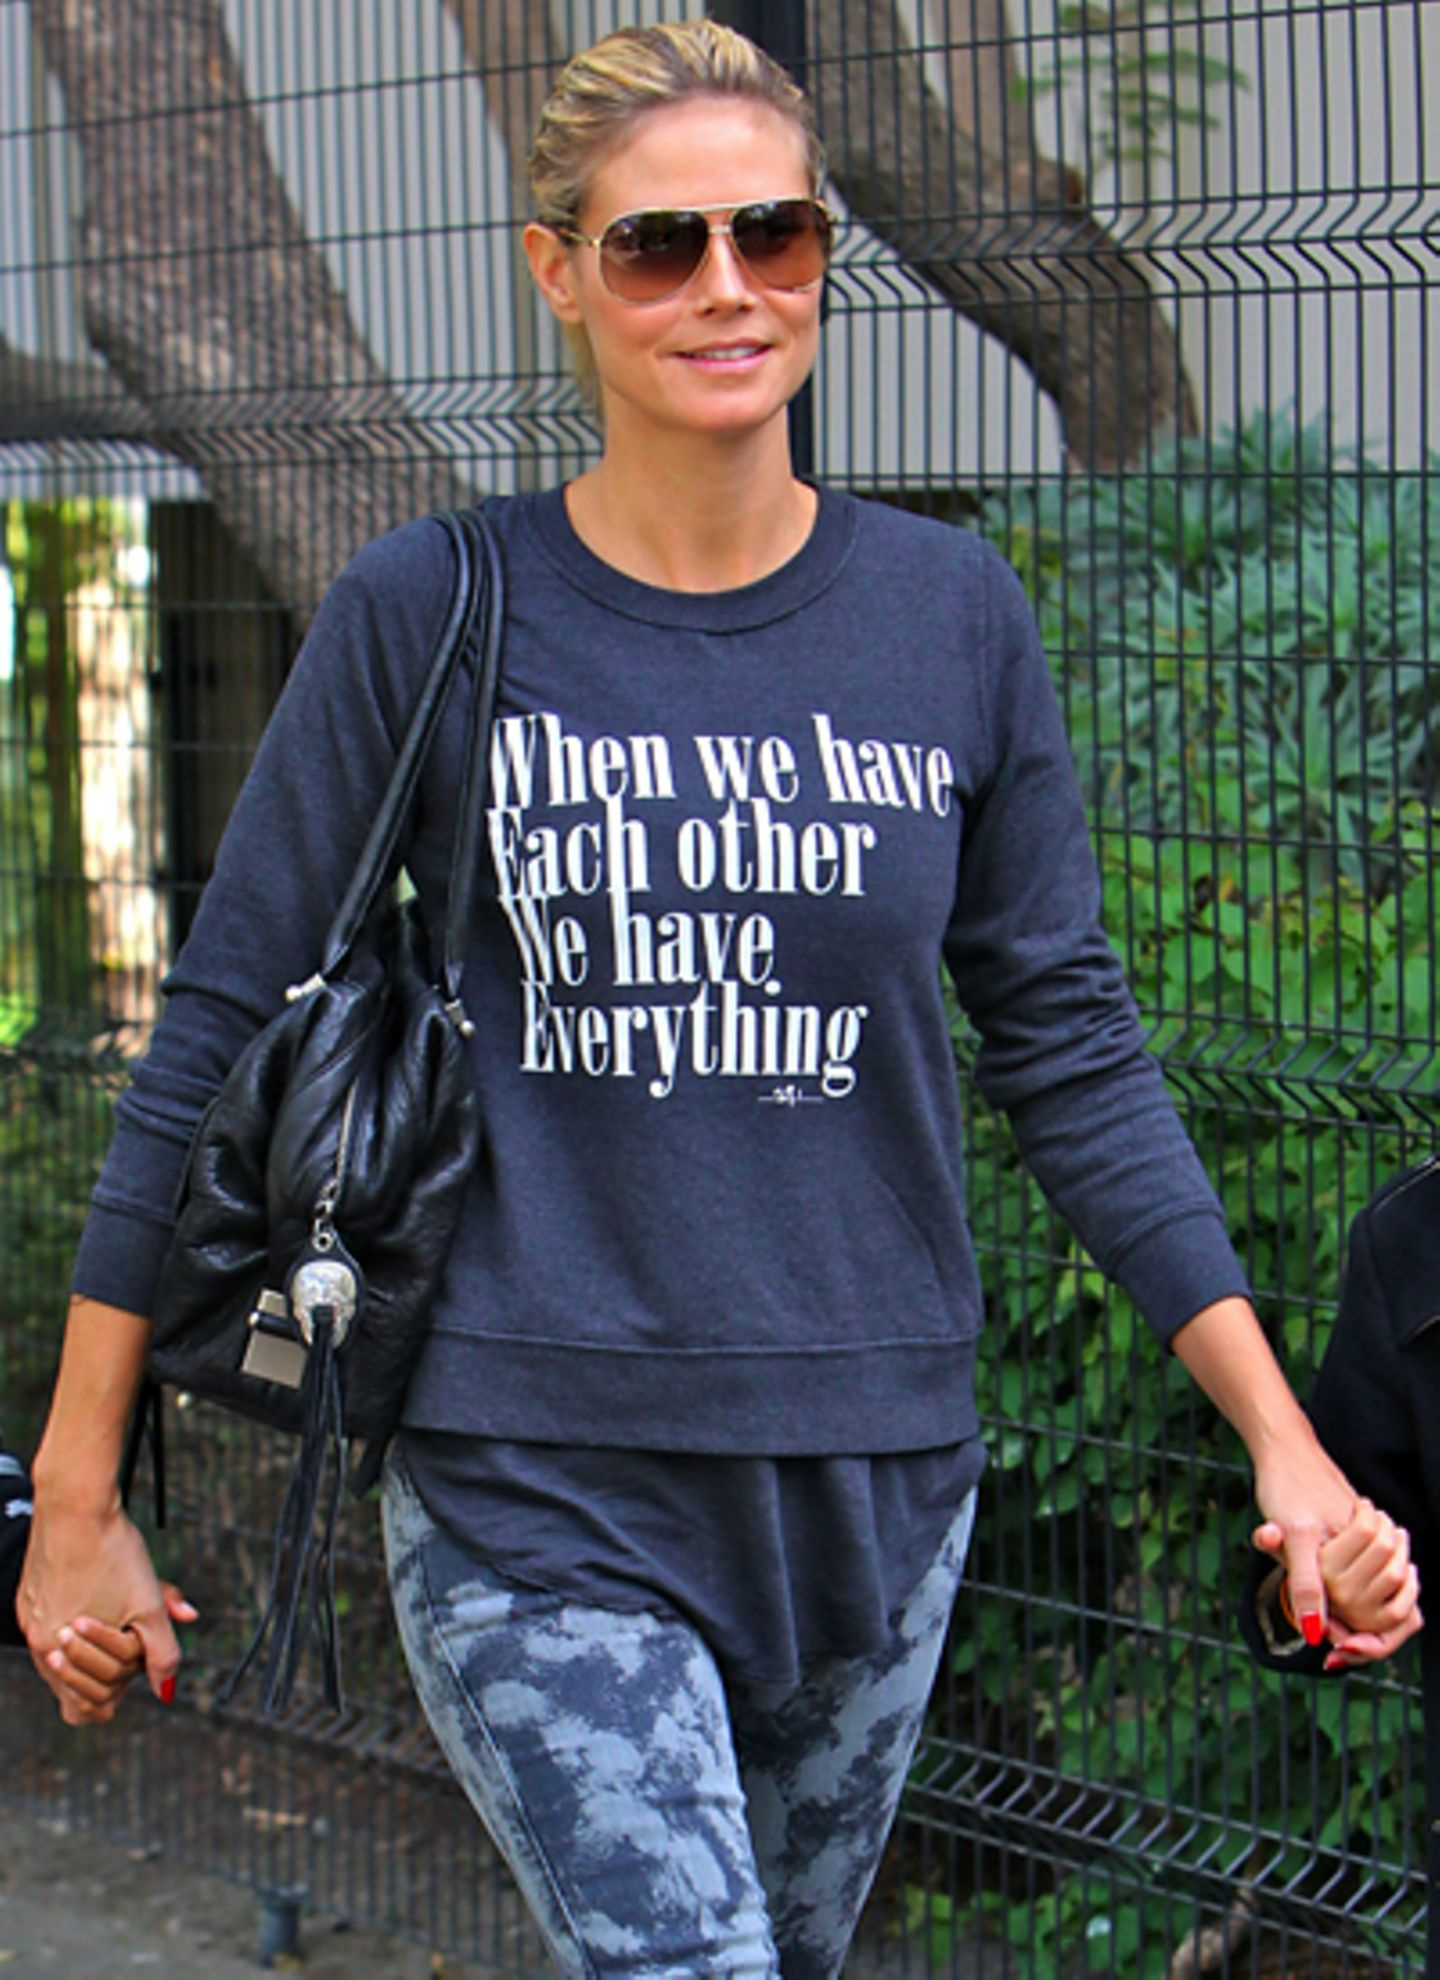 """Beim Familienausflug in Los Angeles lautet Heidi Klums Motto: """"When we have each other we have everything""""."""